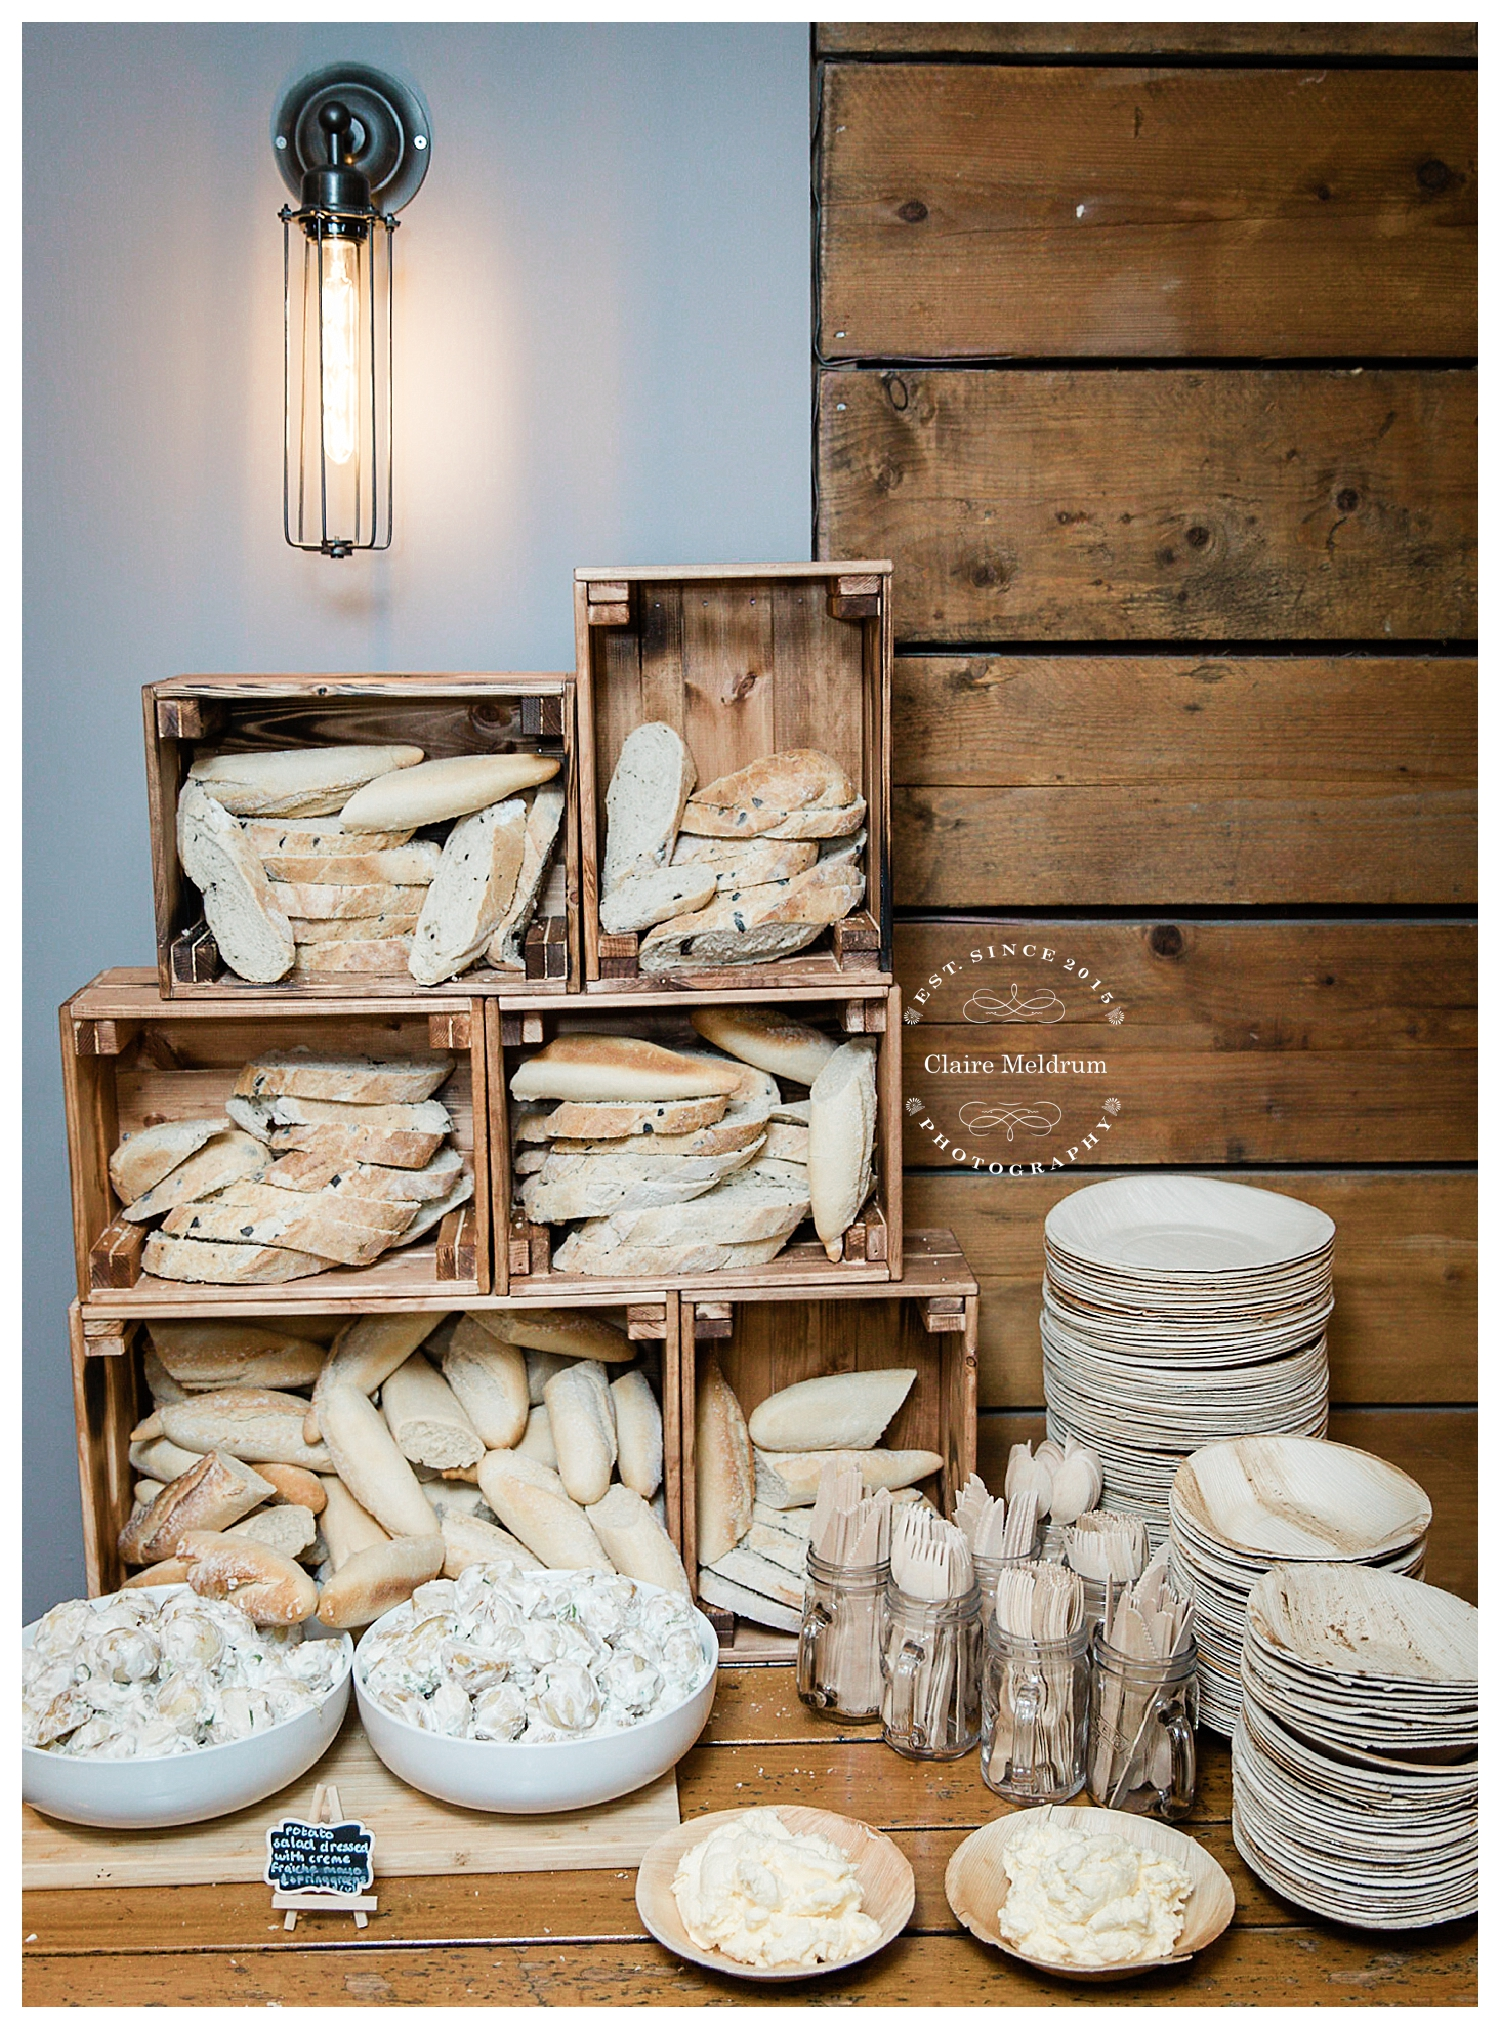 Bread Wall, Bear Coffee, Claire Meldrum Photography